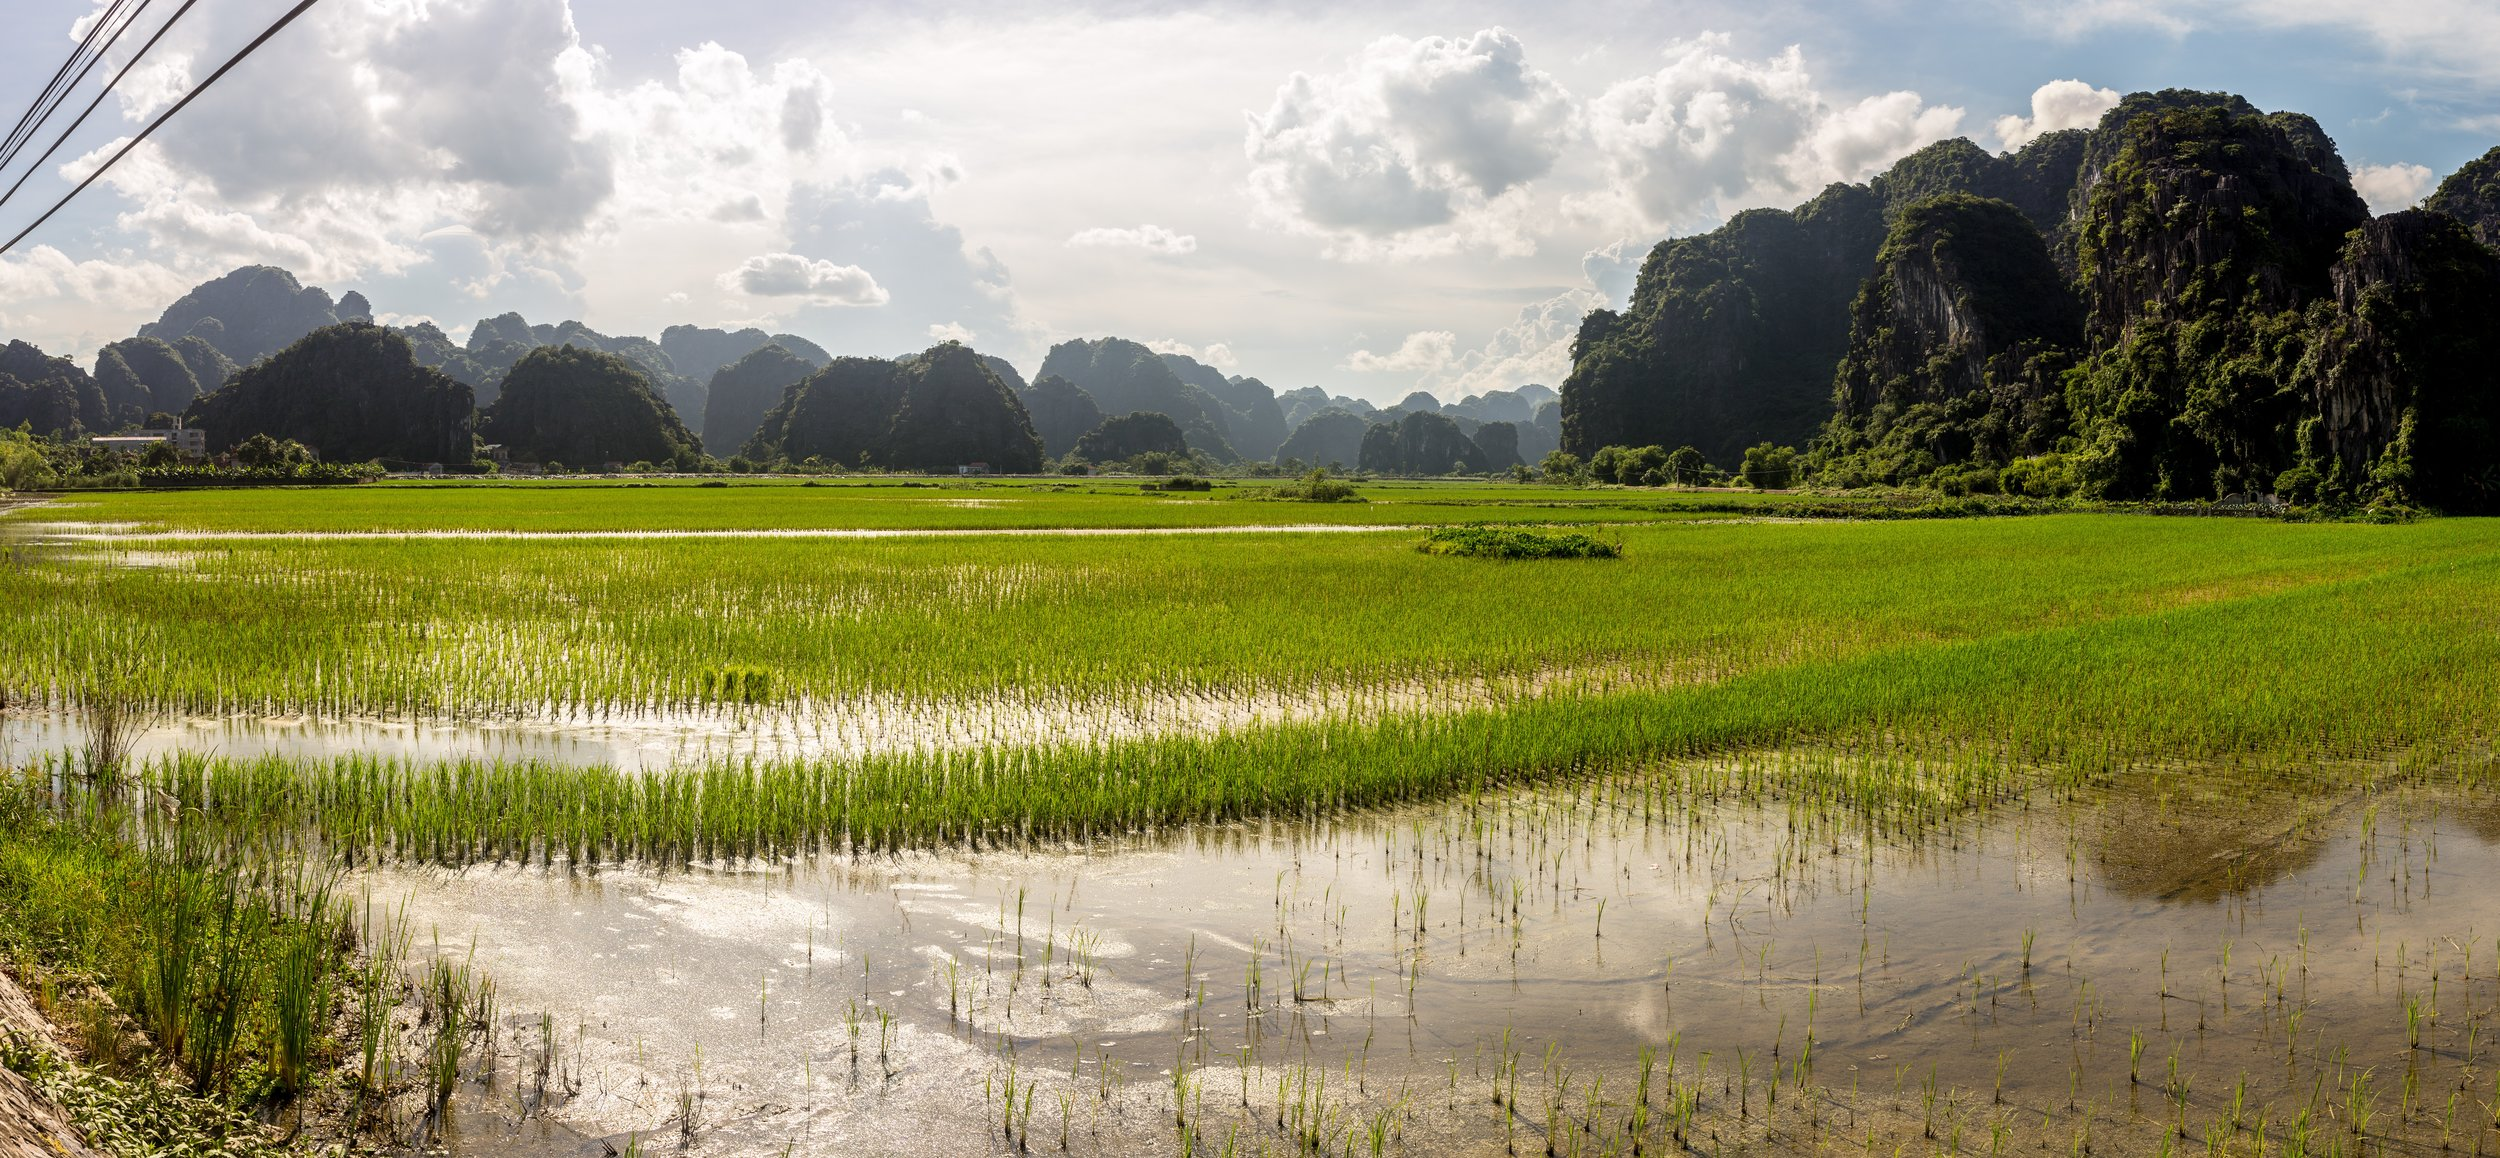 The Rice Fields of Tam Coc, Vietnam